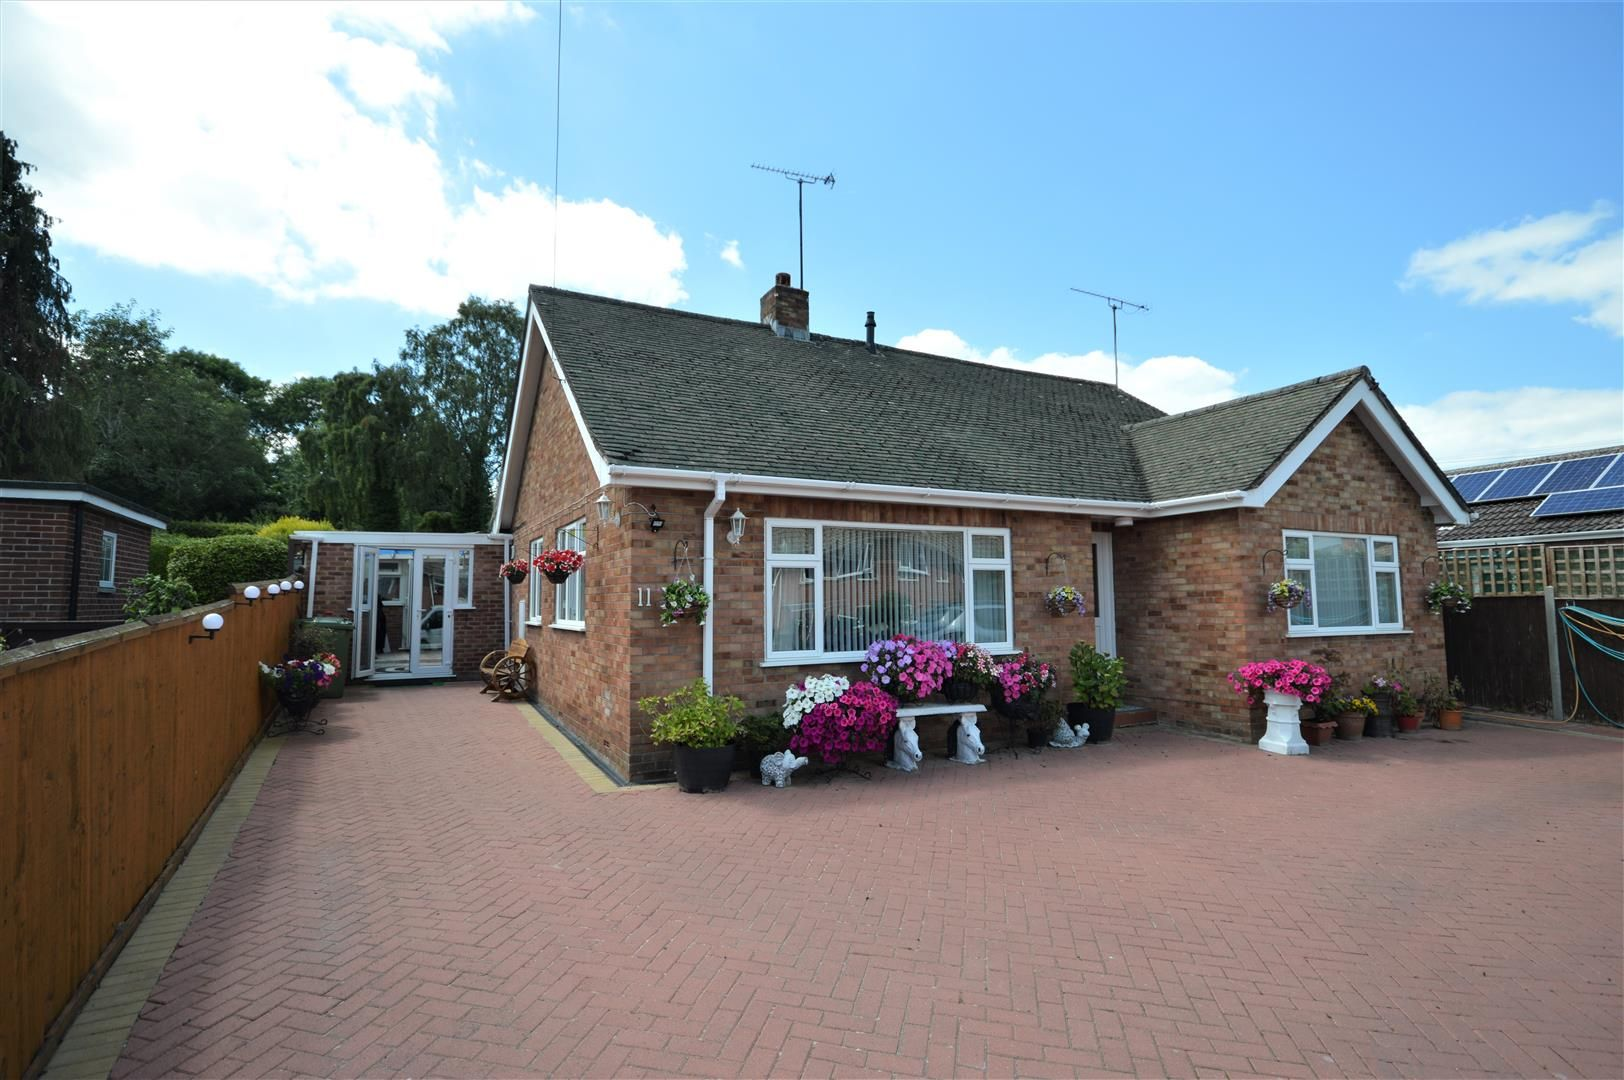 3 bed detached bungalow for sale in Leominster 1